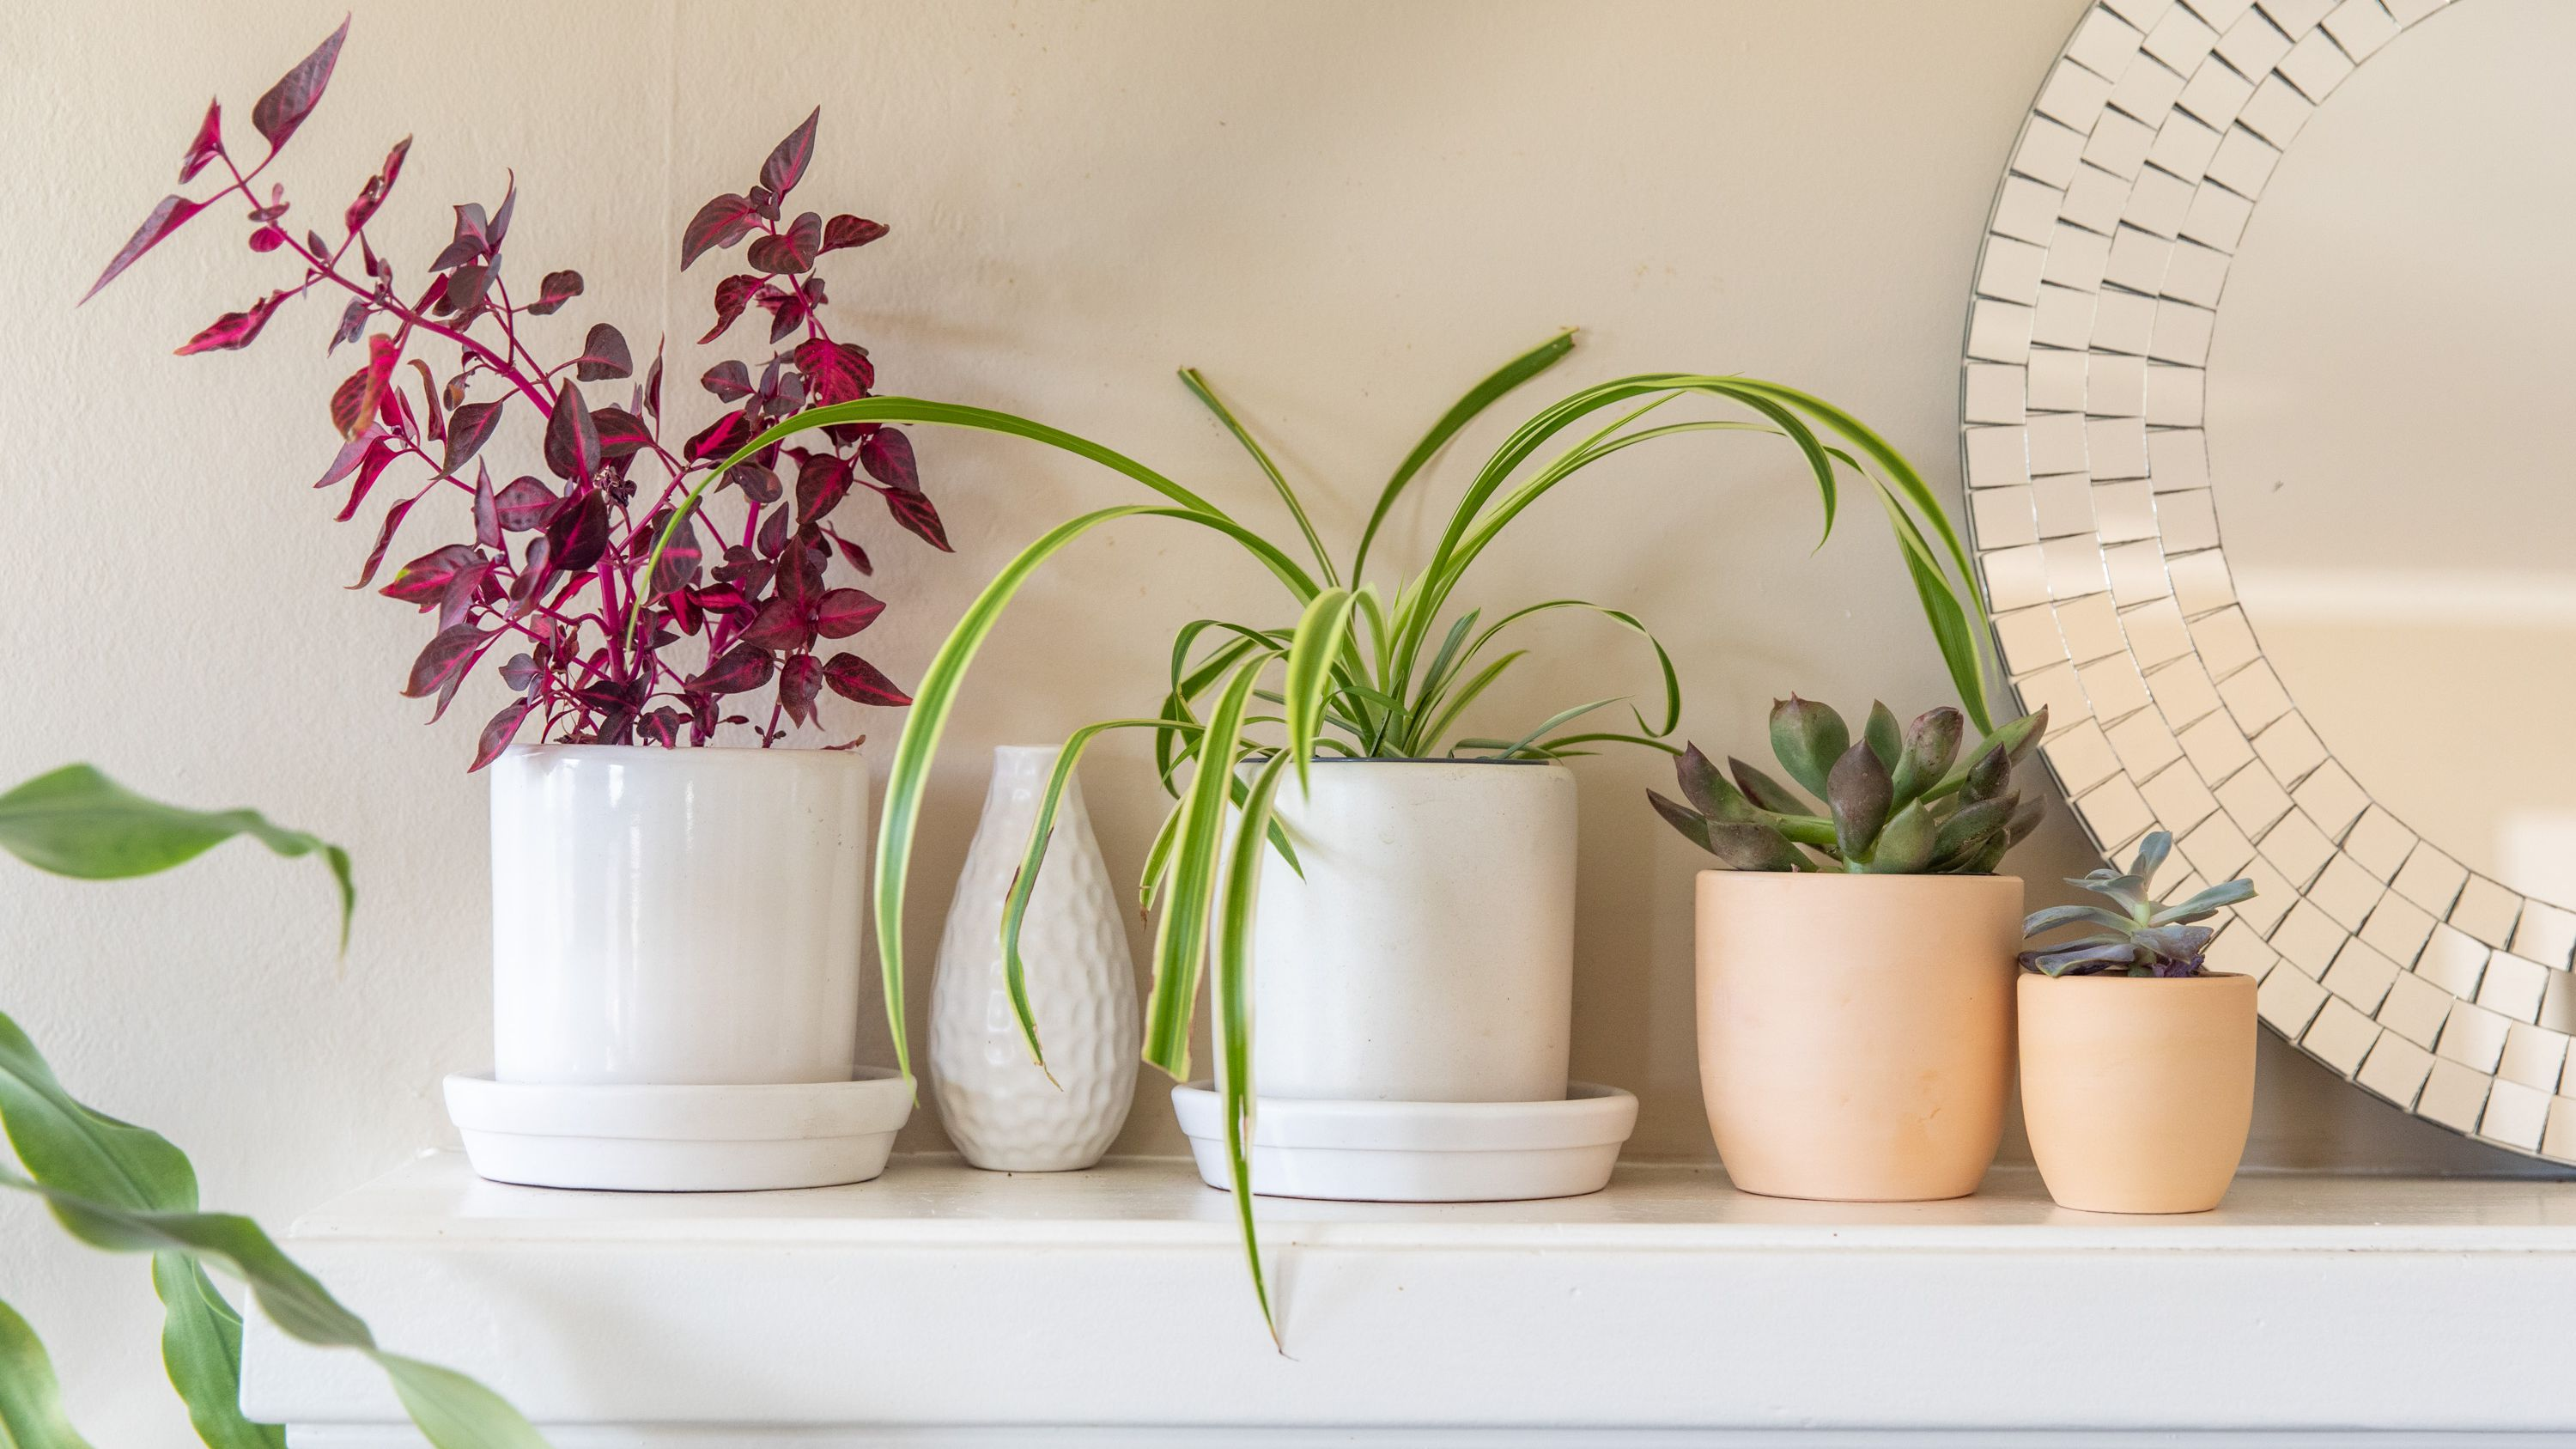 6 Great Ways To Decorate With Plants